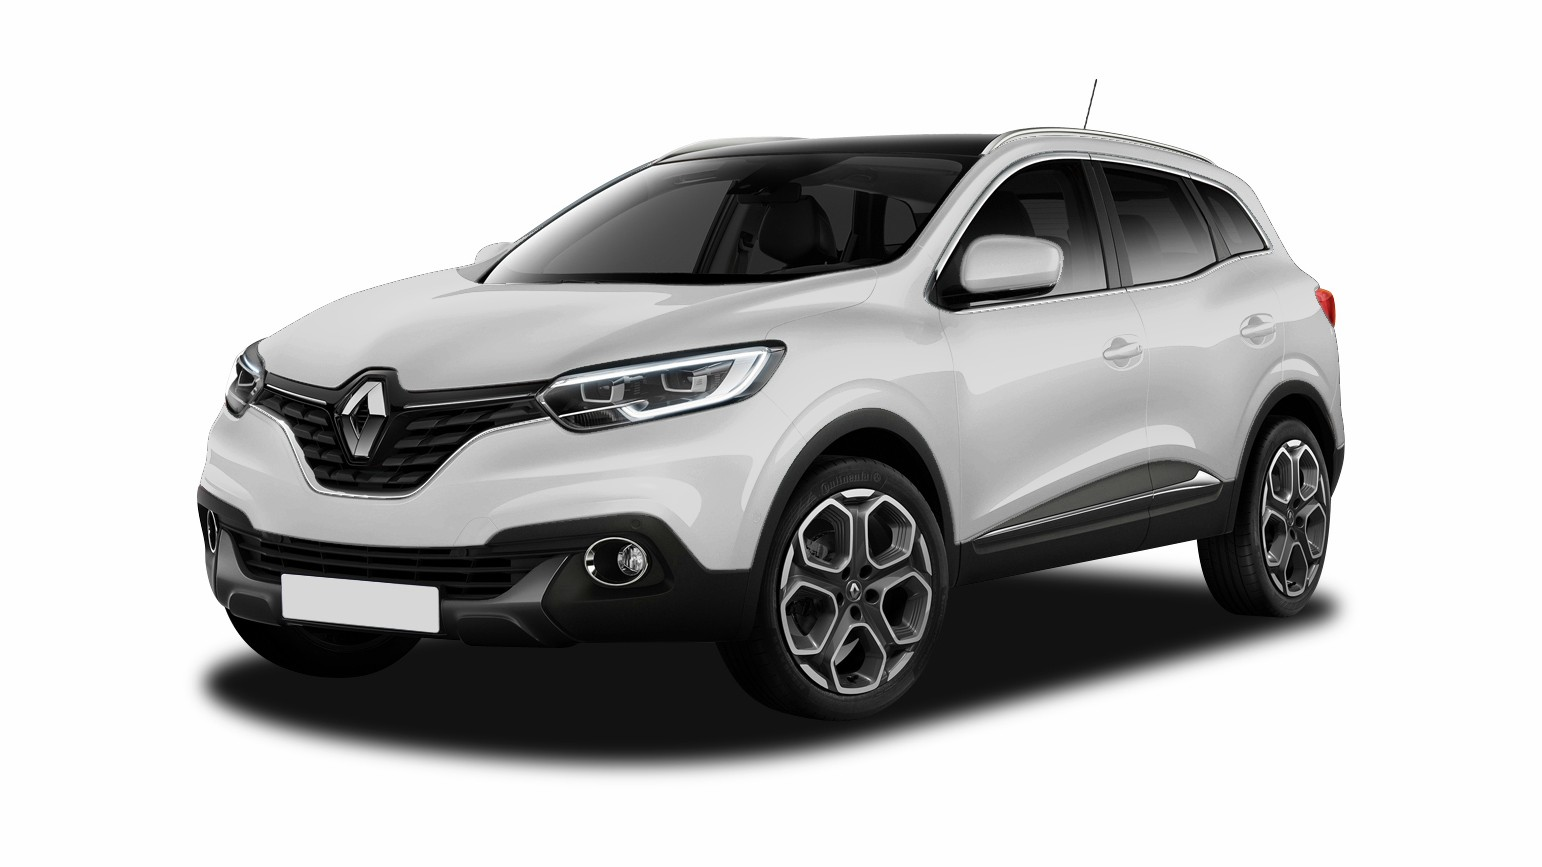 renault kadjar au meilleur prix nouveau renault kadjar vs nissan qashqai premier. Black Bedroom Furniture Sets. Home Design Ideas